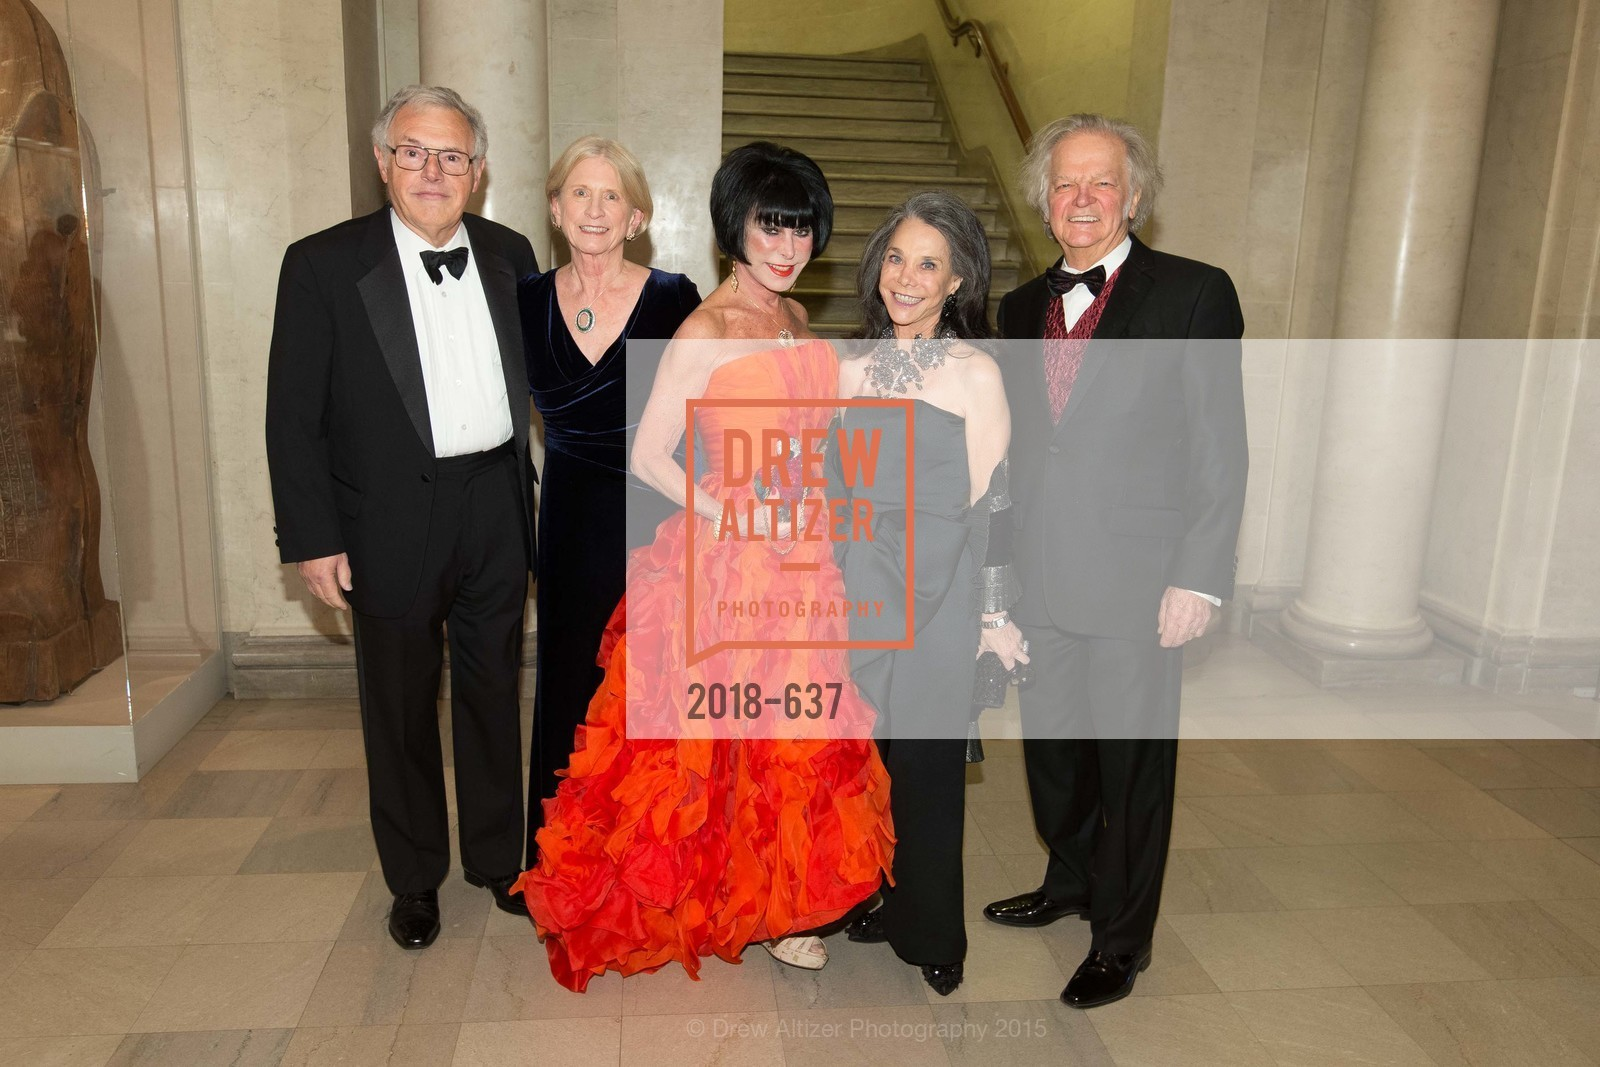 John Lavorgna, Joan Lavorgna, Marilyn Cabak, Julie Coplon, Michael Cabak, AN ELEGANT EVENING Presented by the Fine Arts Museums of San Francisco, Legion of Honor, Court of Honor. 100 34th Ave, December 8th, 2015,Drew Altizer, Drew Altizer Photography, full-service agency, private events, San Francisco photographer, photographer california